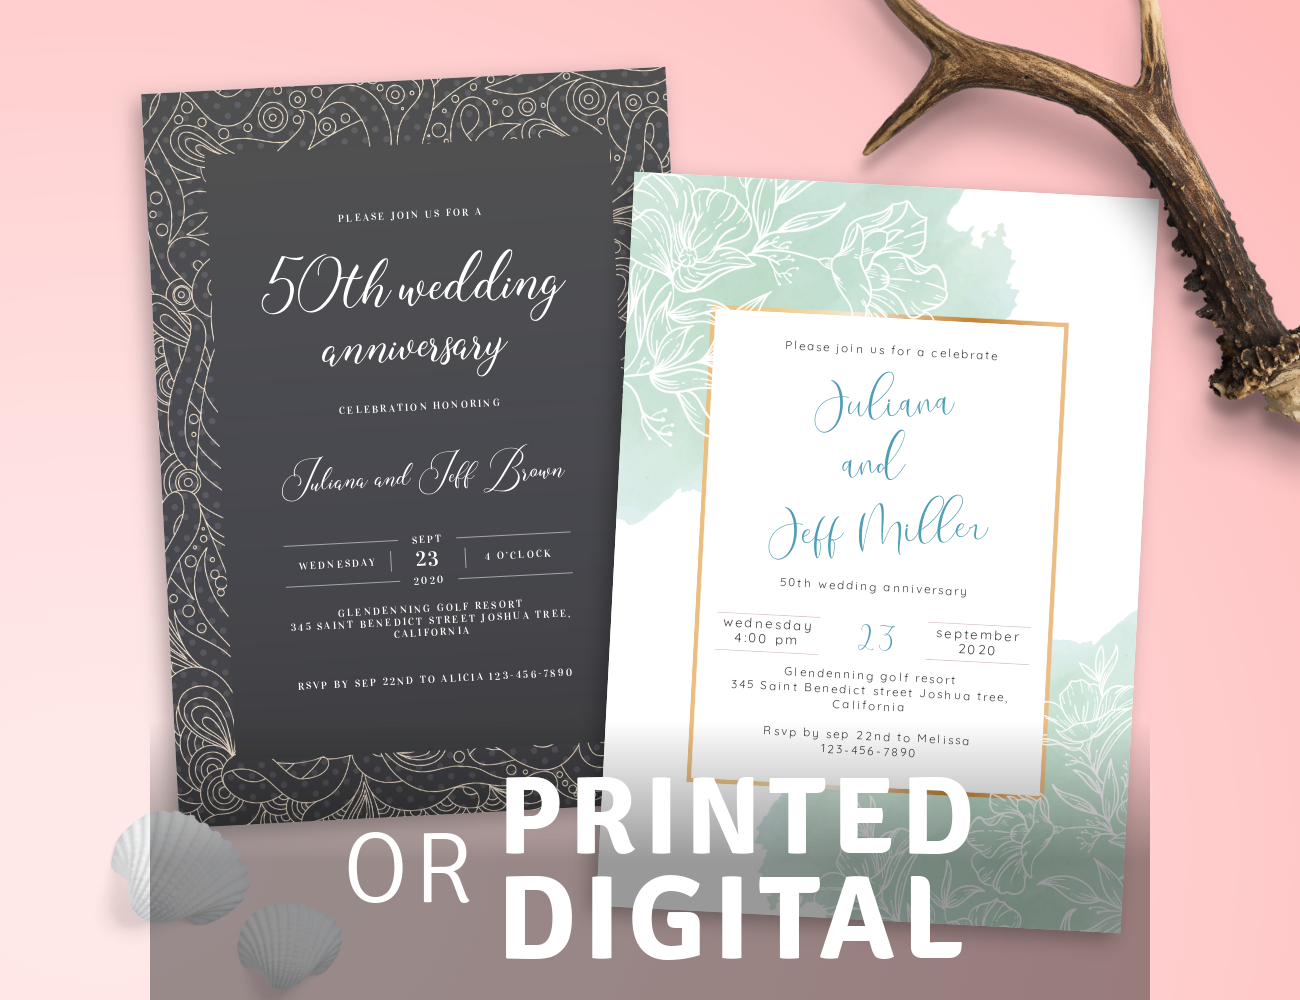 PDF or Printed Anniversary Invitations